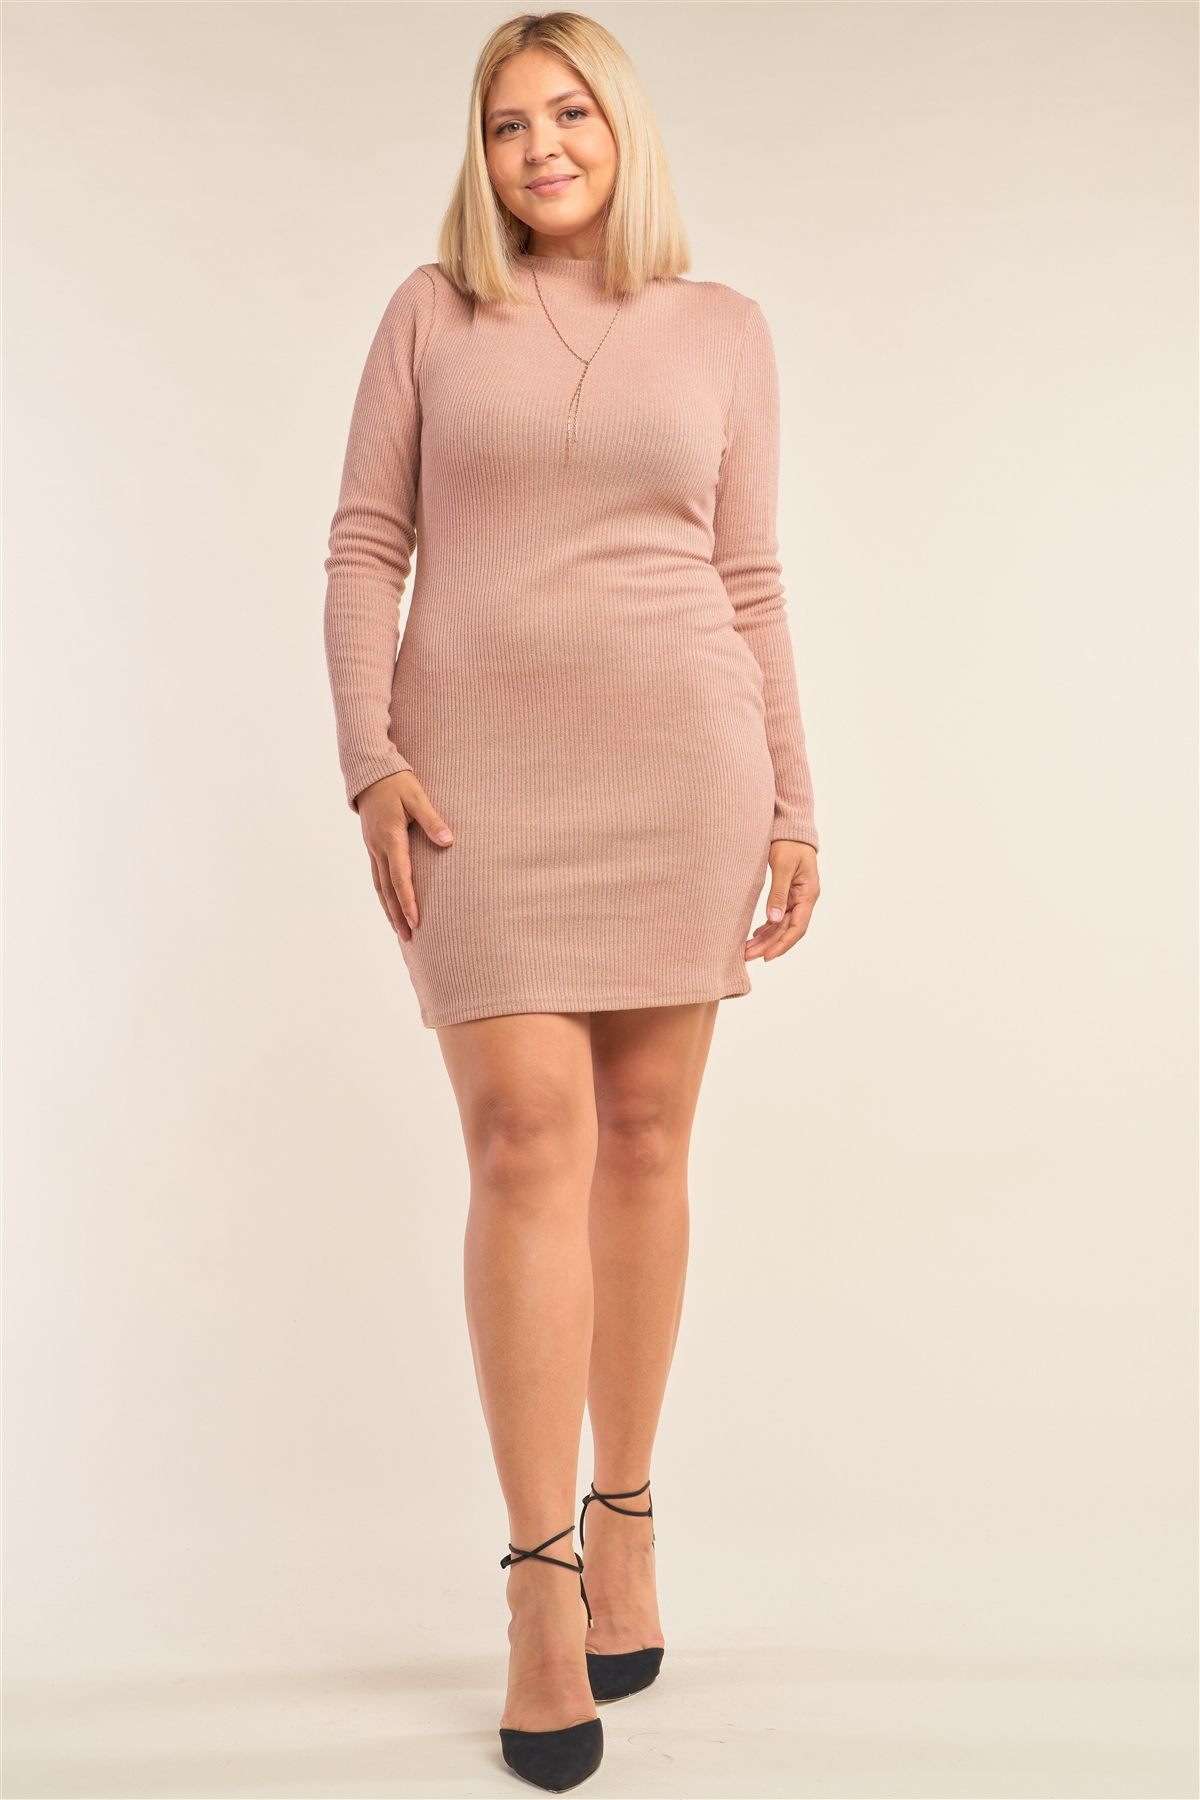 Plus Size Long Sleeve Ribbed Knit Sexy Cut Out Back Mini Dress - Absolute Fashion 2020